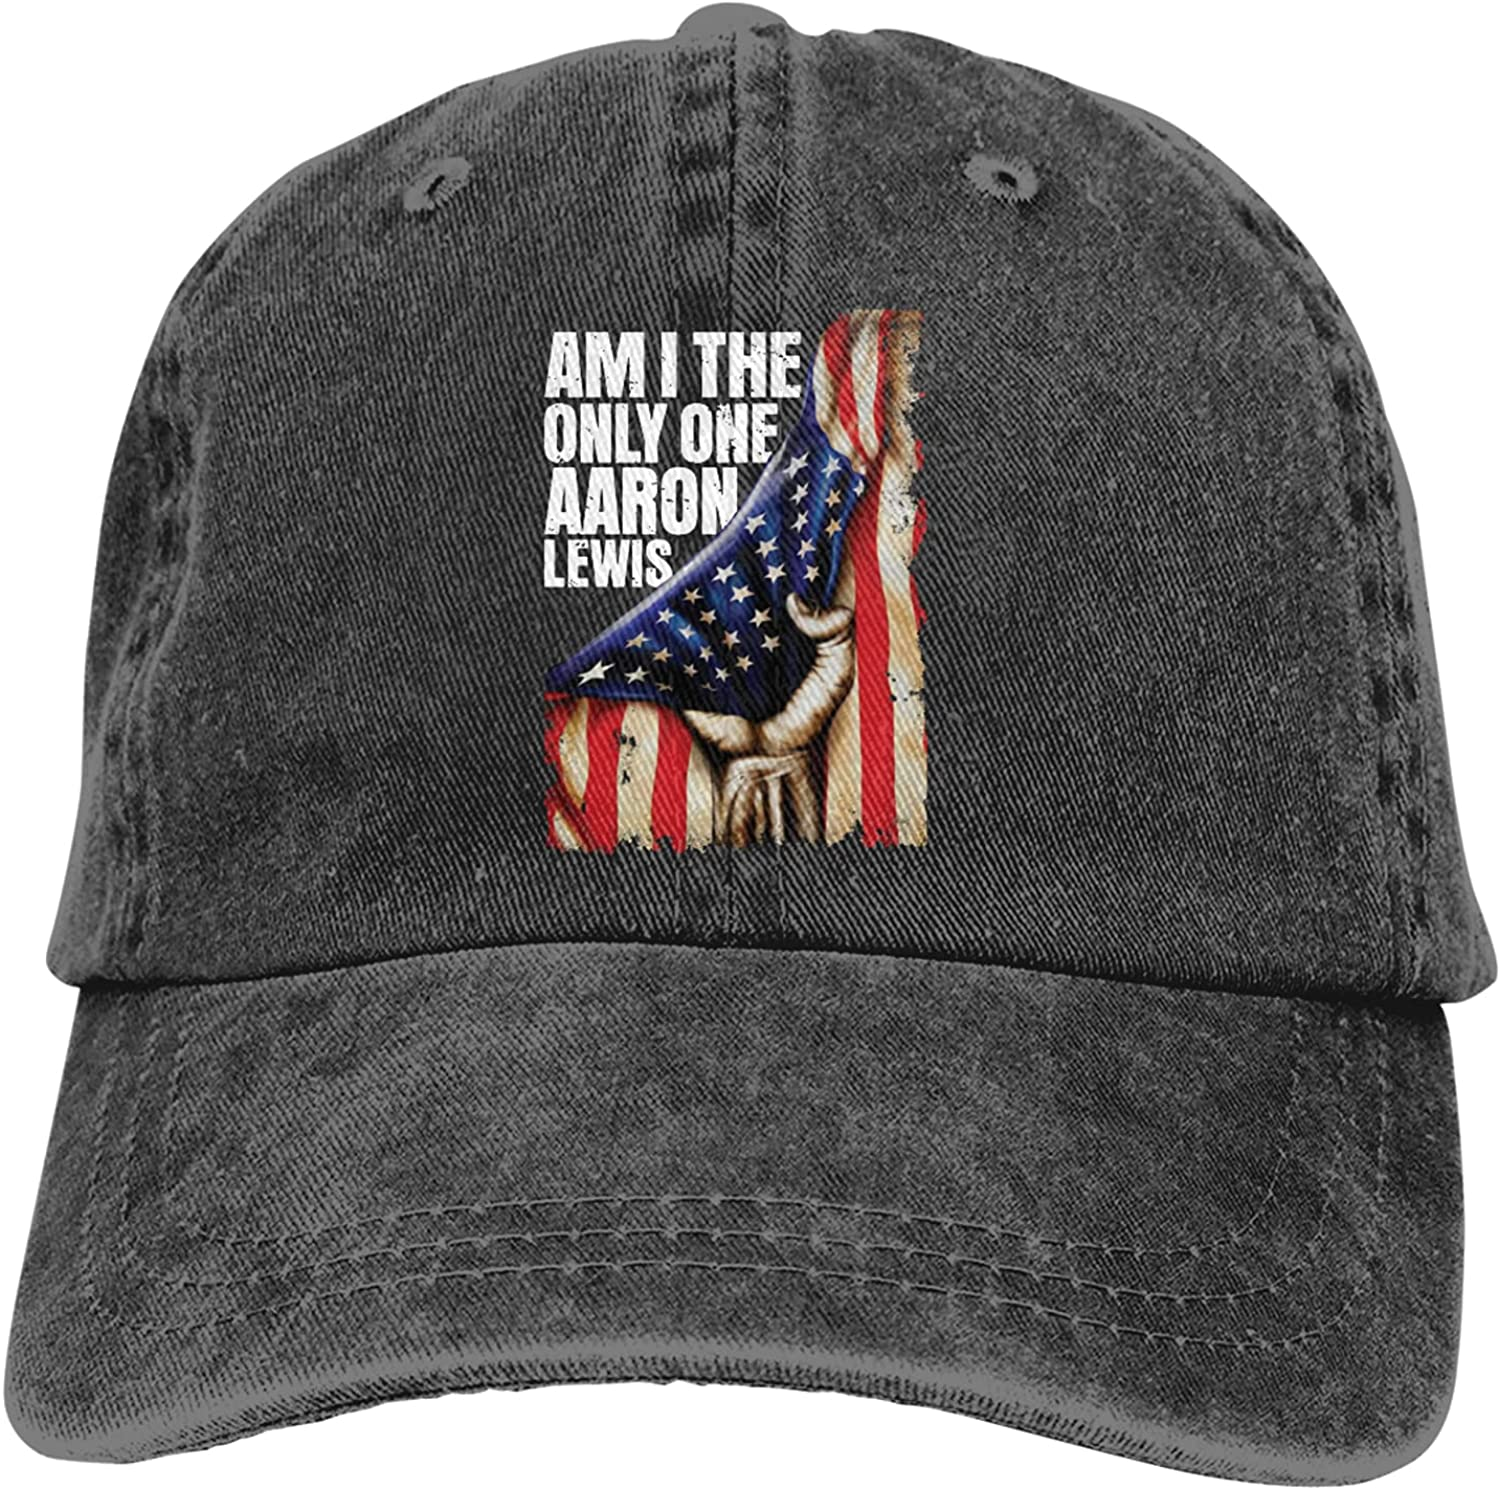 Am I The Only Bombing new work One Aaron Lewis for Cap Men Baseball Our shop most popular Women Unisex